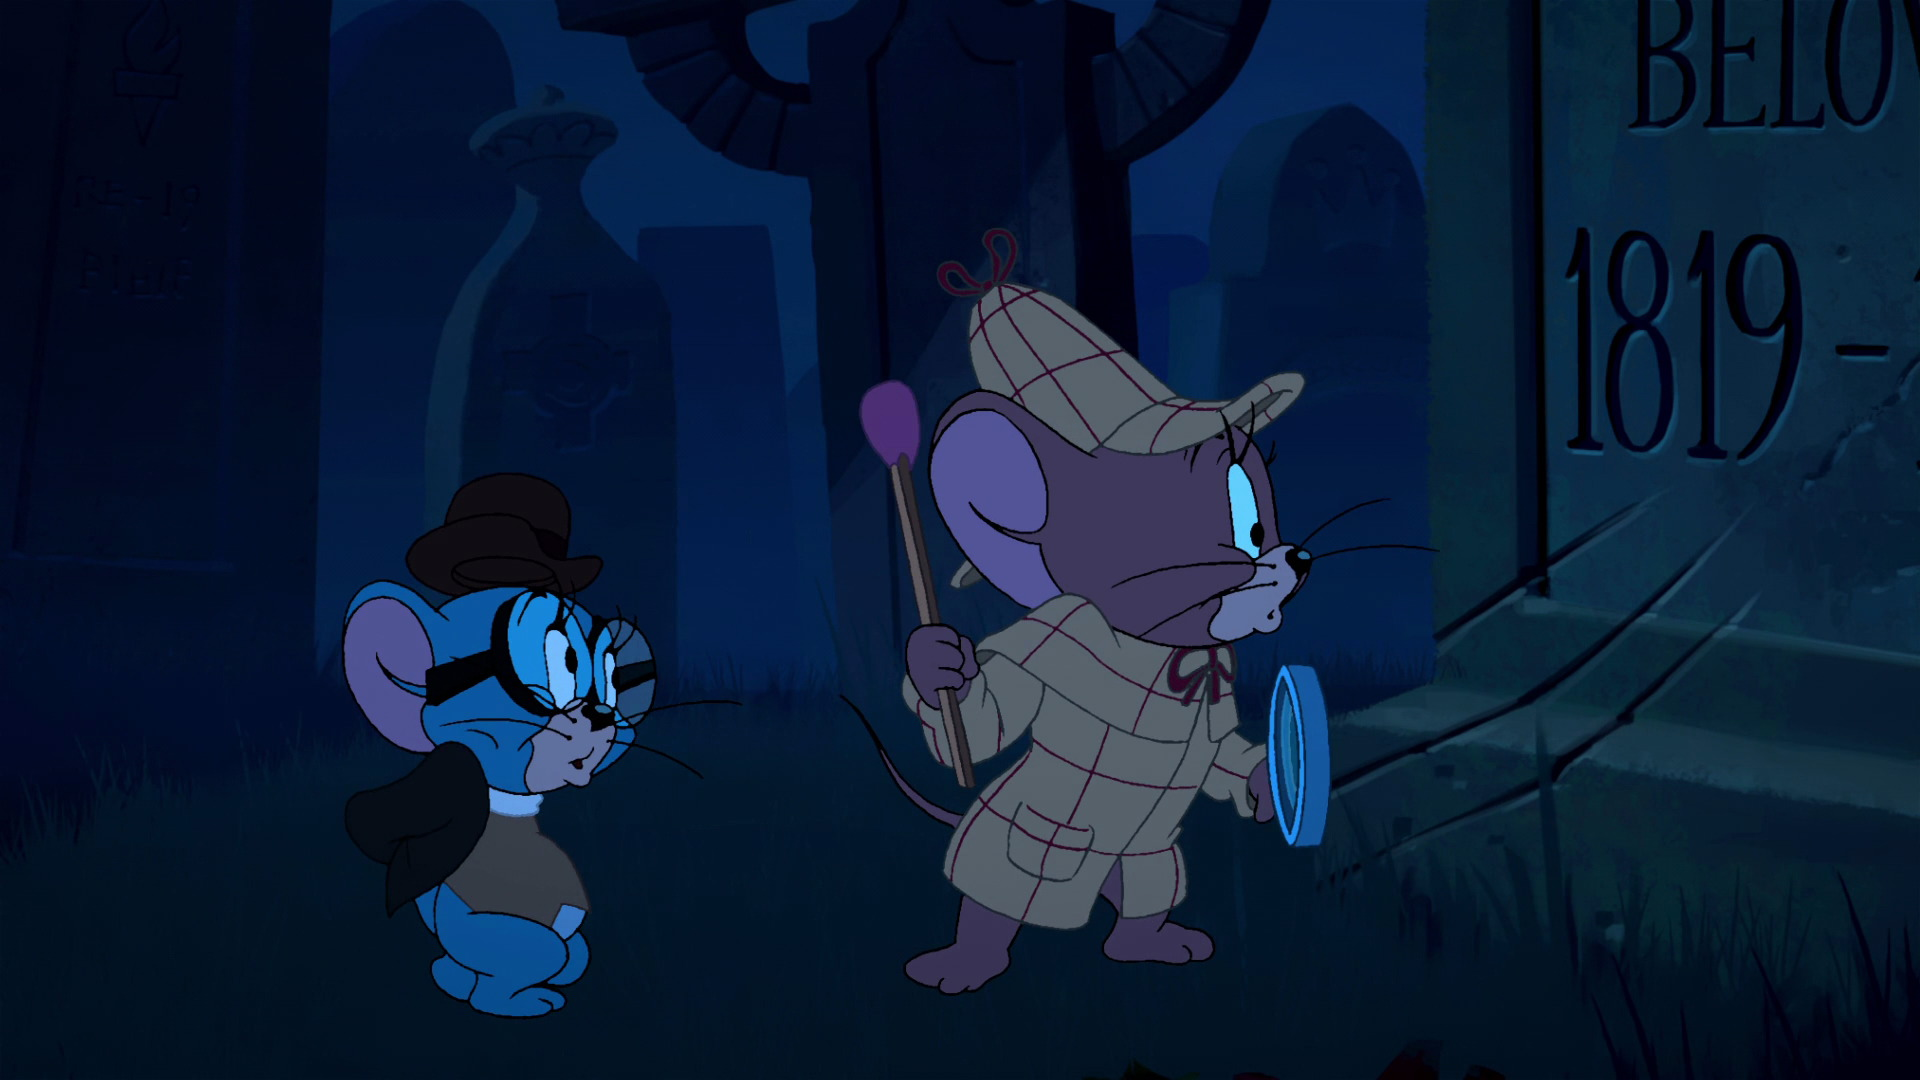 tom and jerry meet sherlock holmes watch online in urdu Watch tom and jerry meet sherlock holmes online free in london, a thief stole jewelry from scotland yard and the beautiful singer - red is suspected.